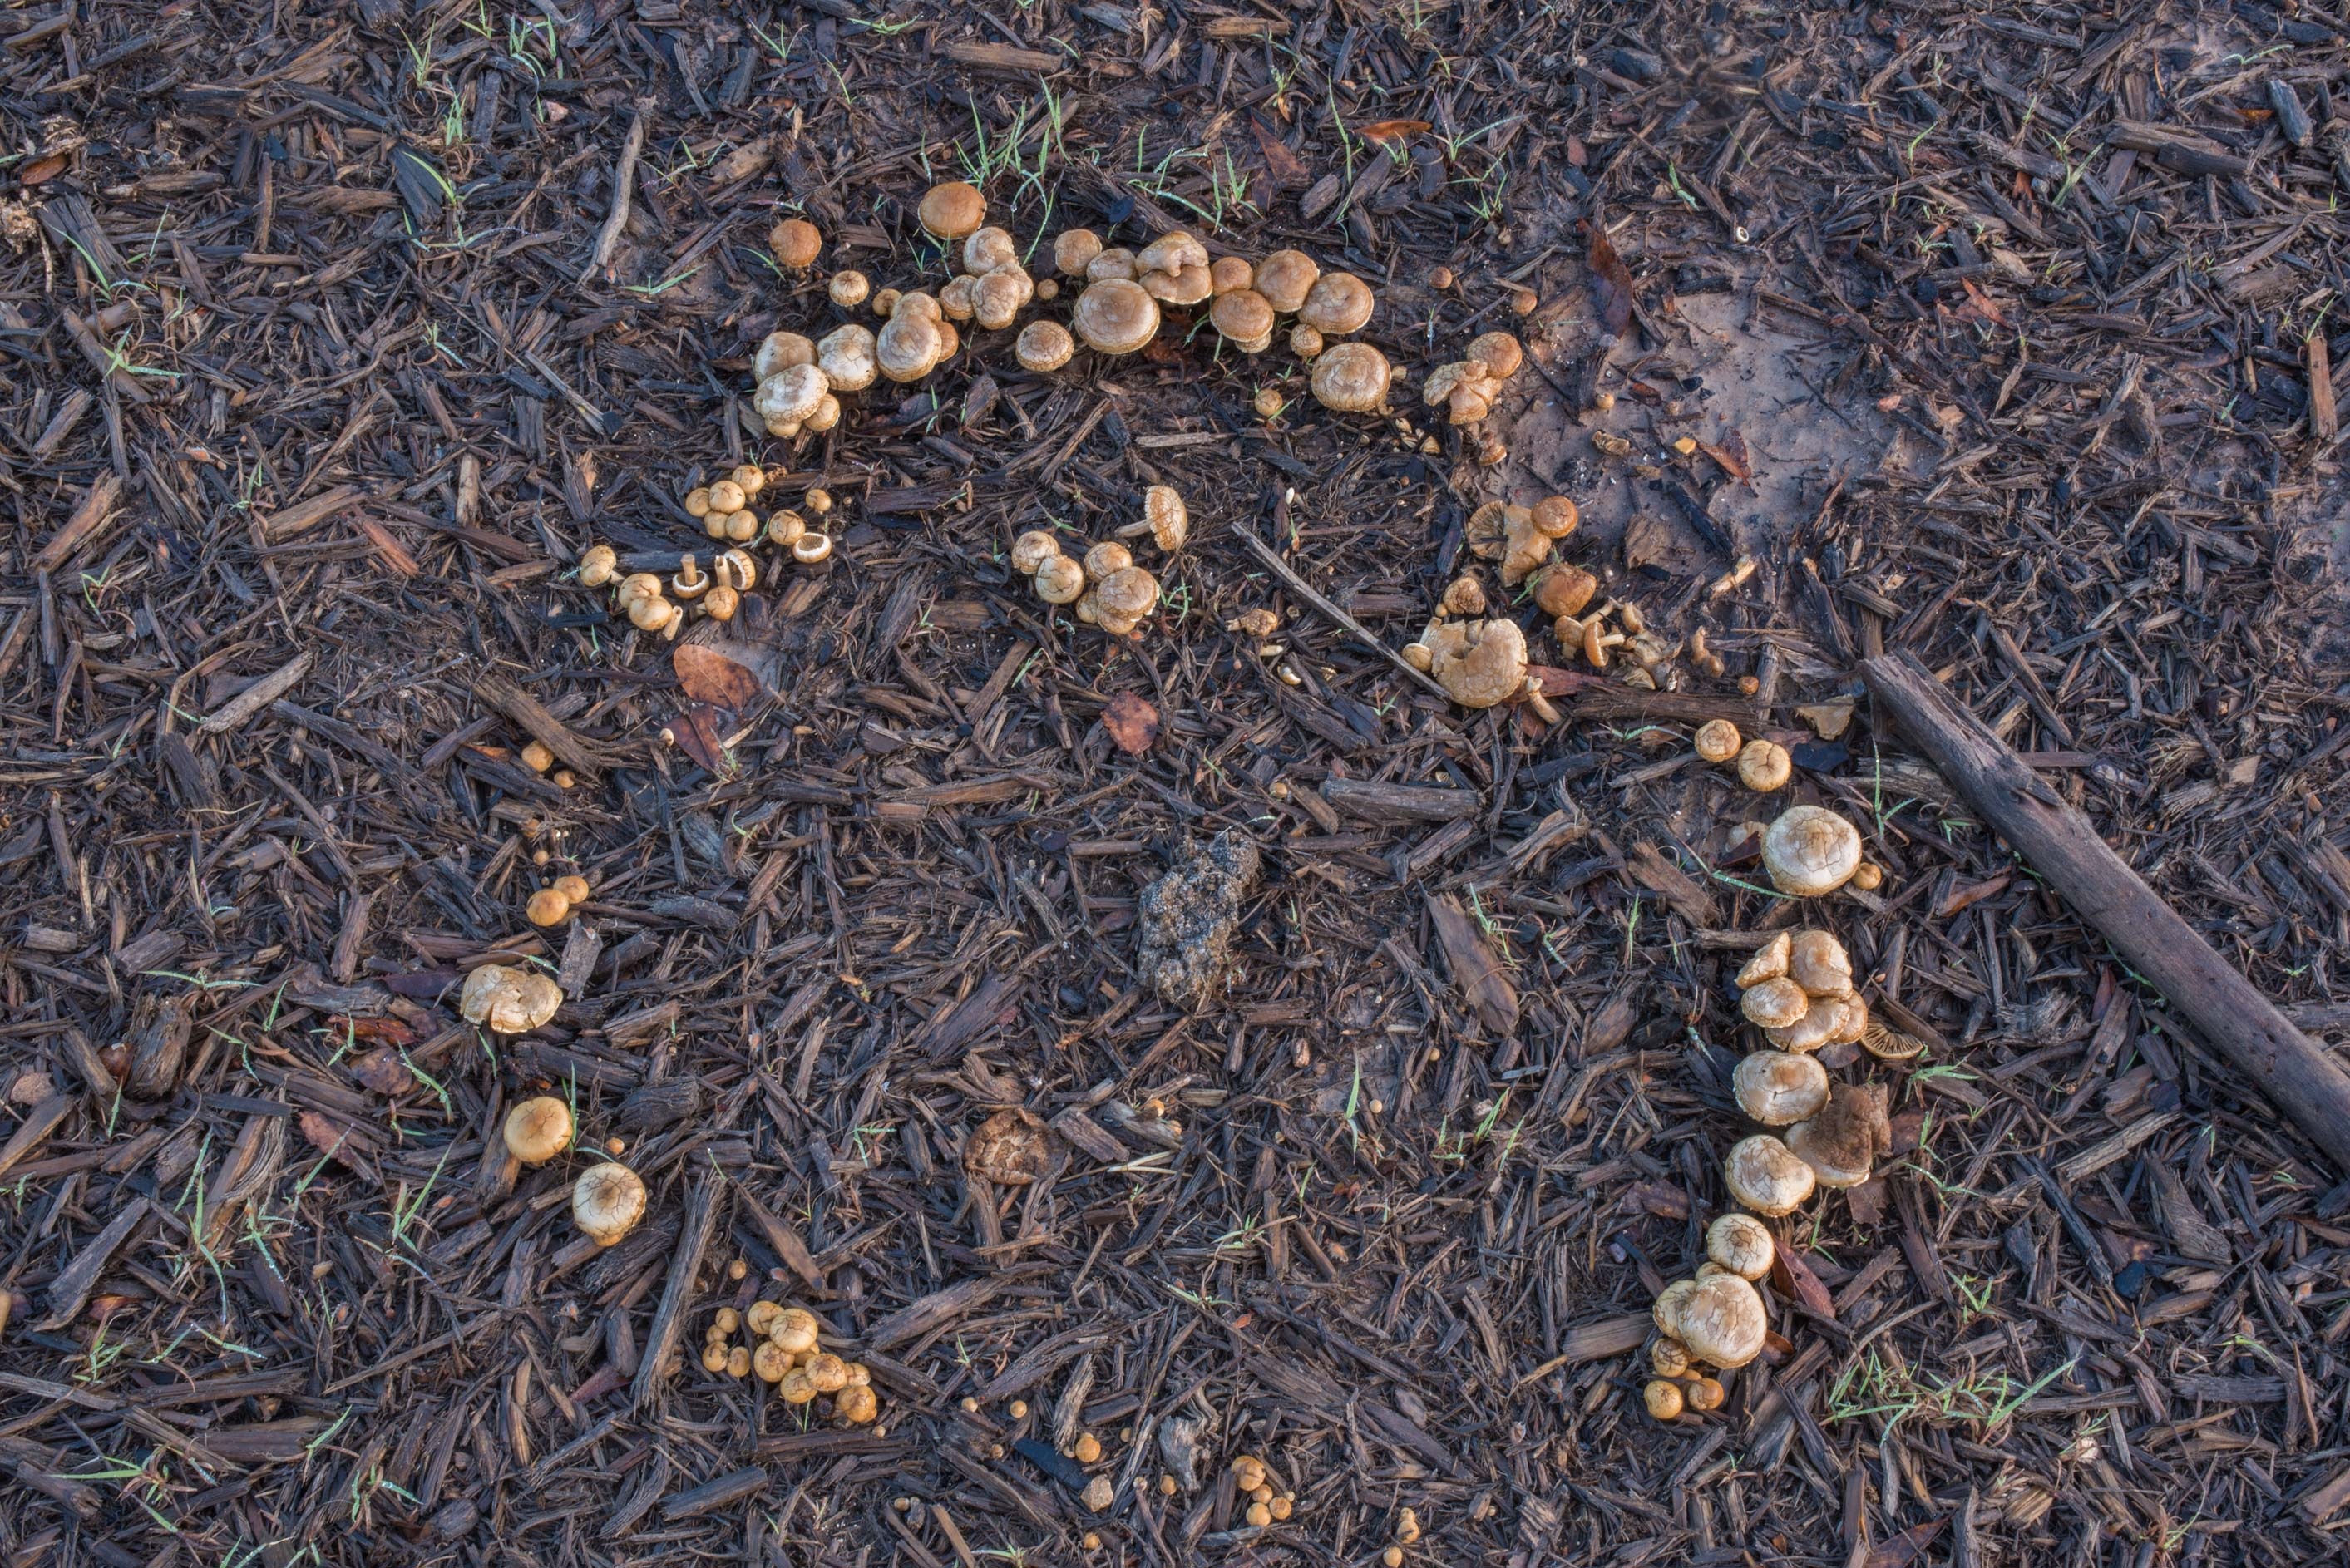 Fairy ring of fieldcap mushrooms (Agrocybe...Creek Park. College Station, Texas